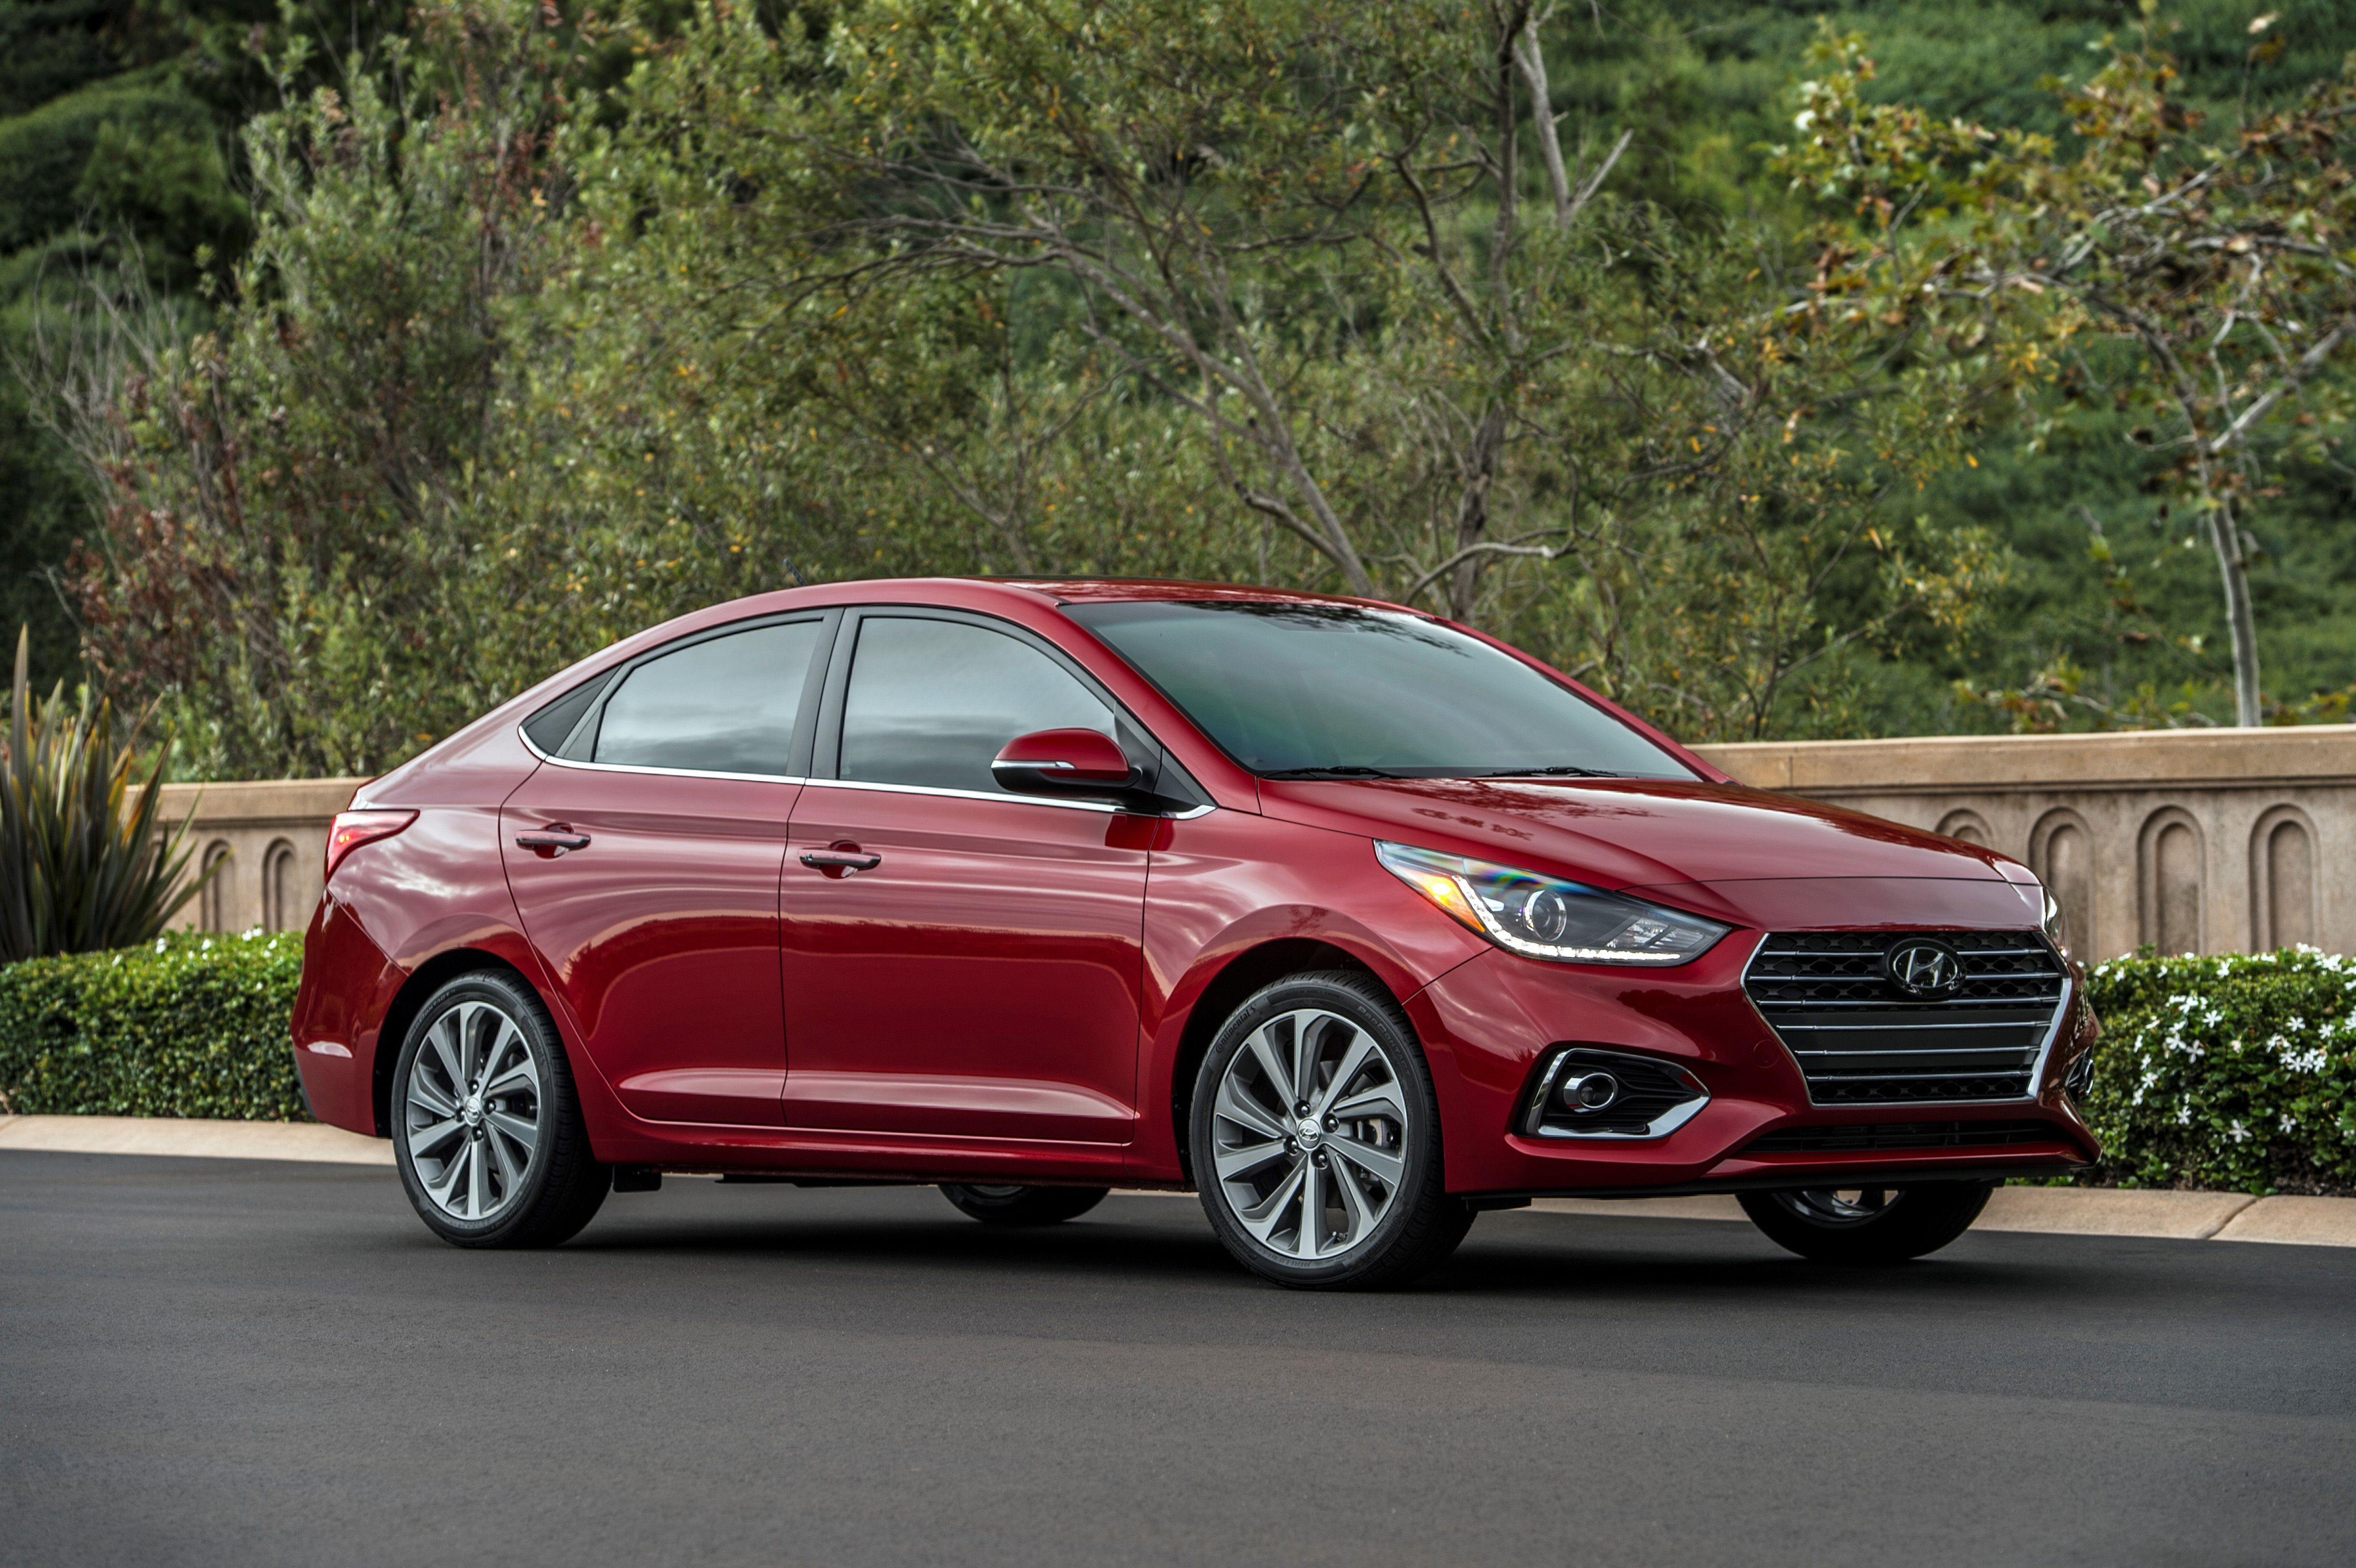 2020 Hyundai Accent Review, Pricing, and Specs